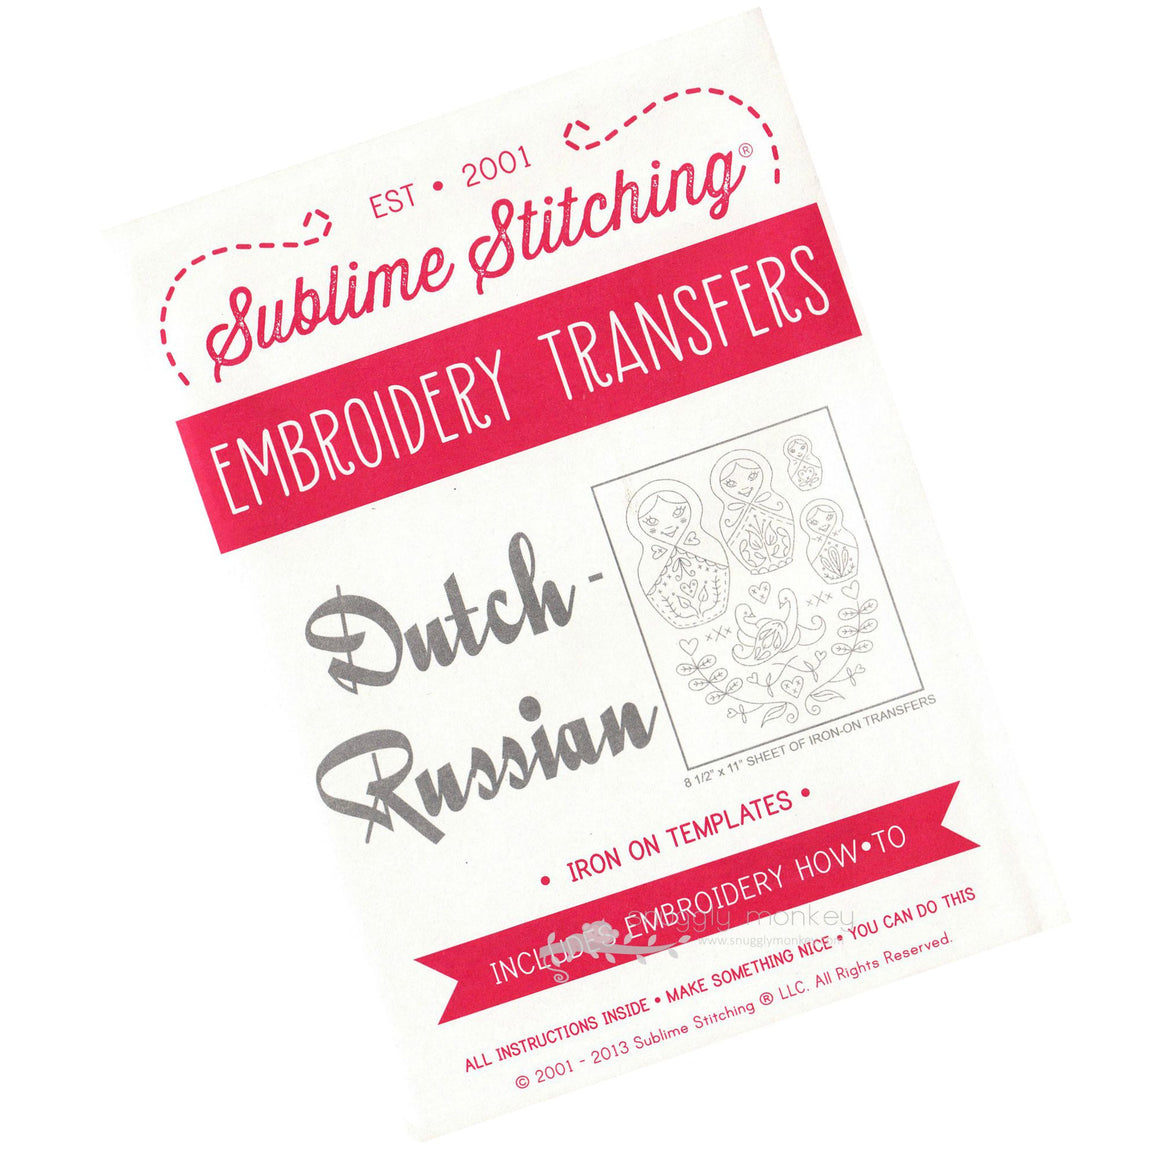 Sublime Stitching Dutch Russian Hand Embroidery Pattern